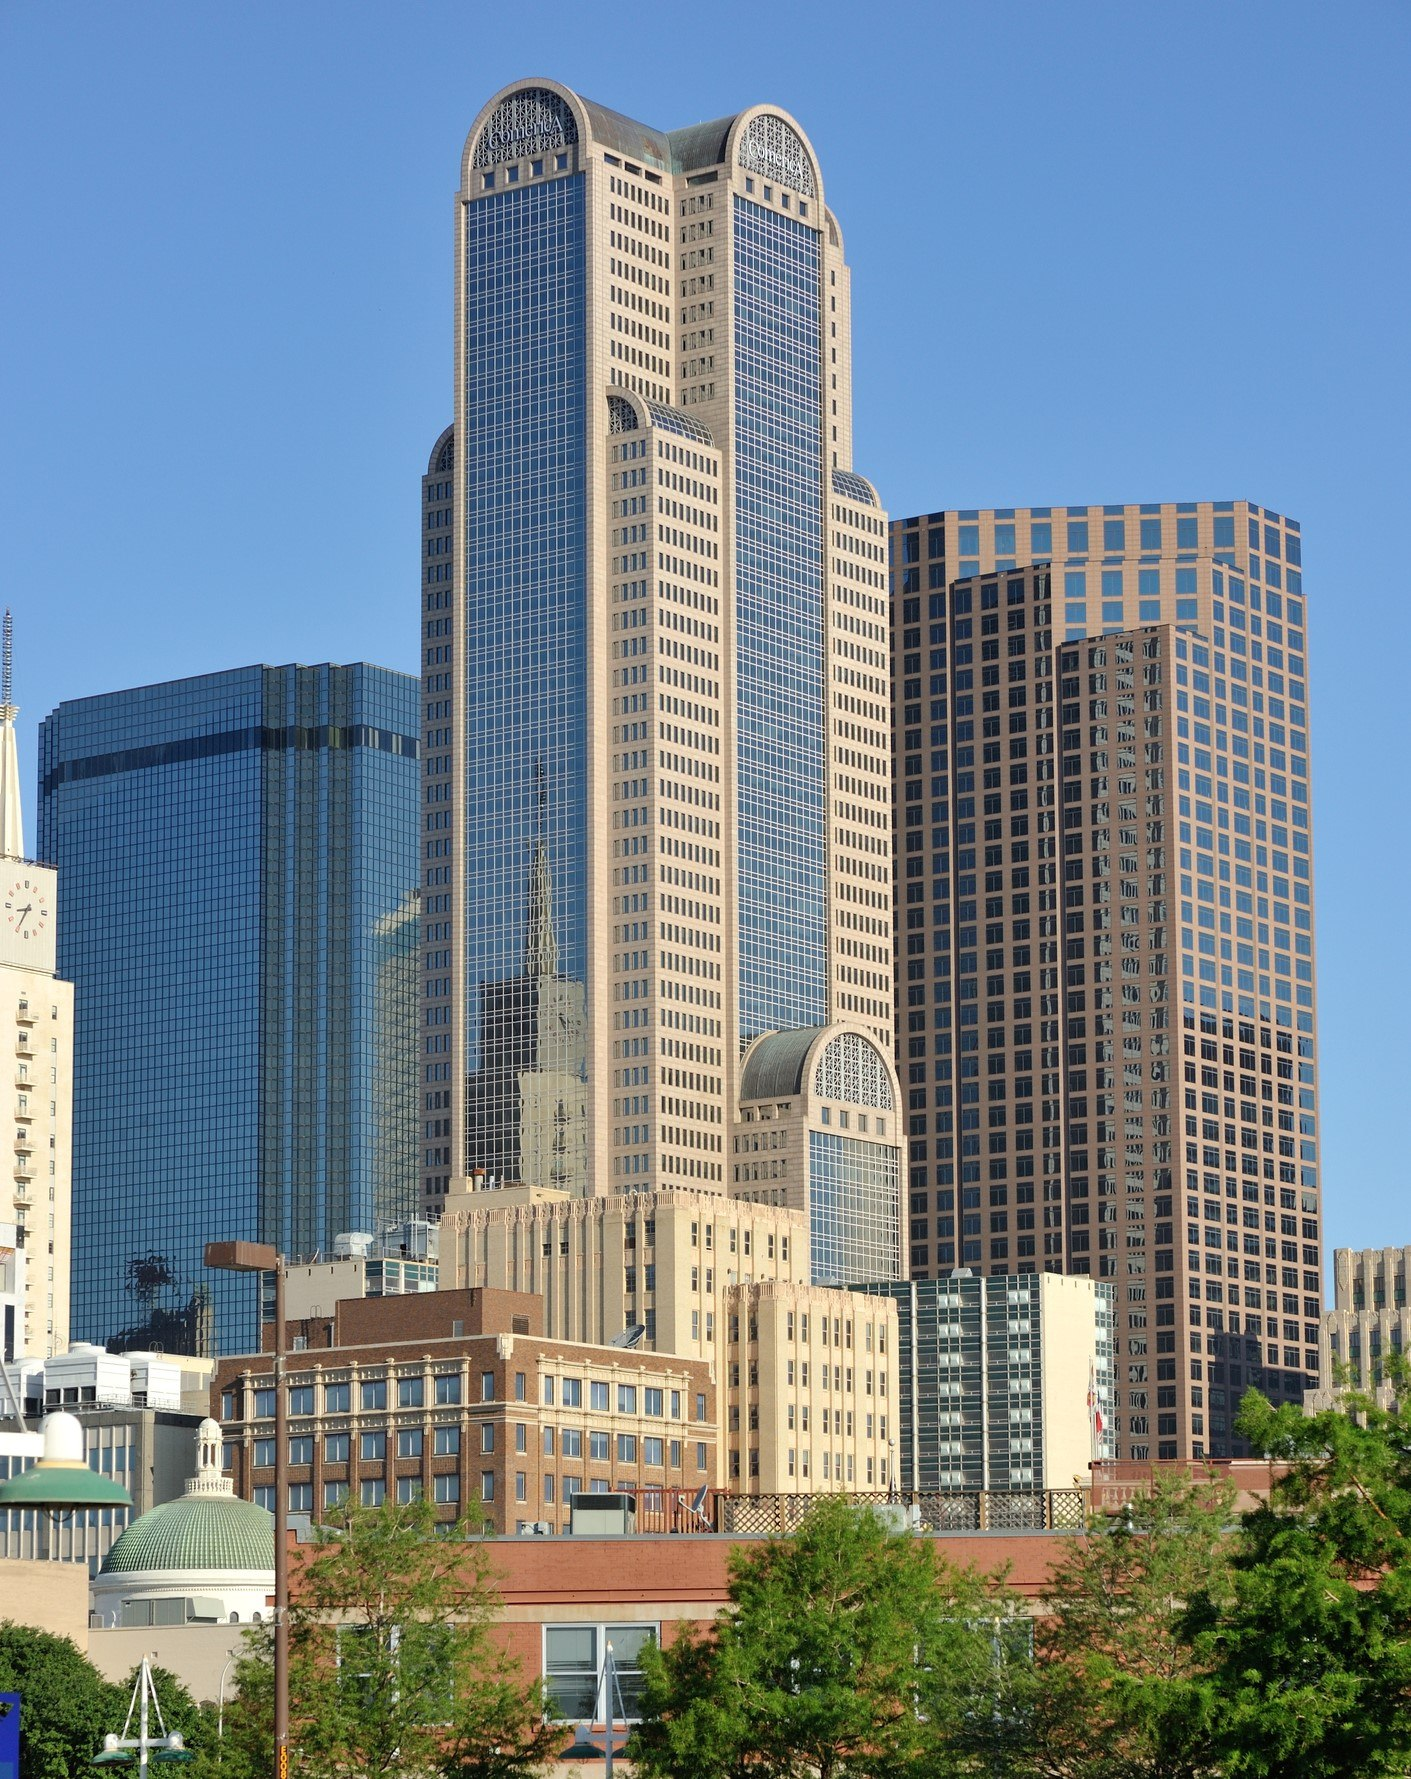 Comerica bank tower in Dallas,Texas